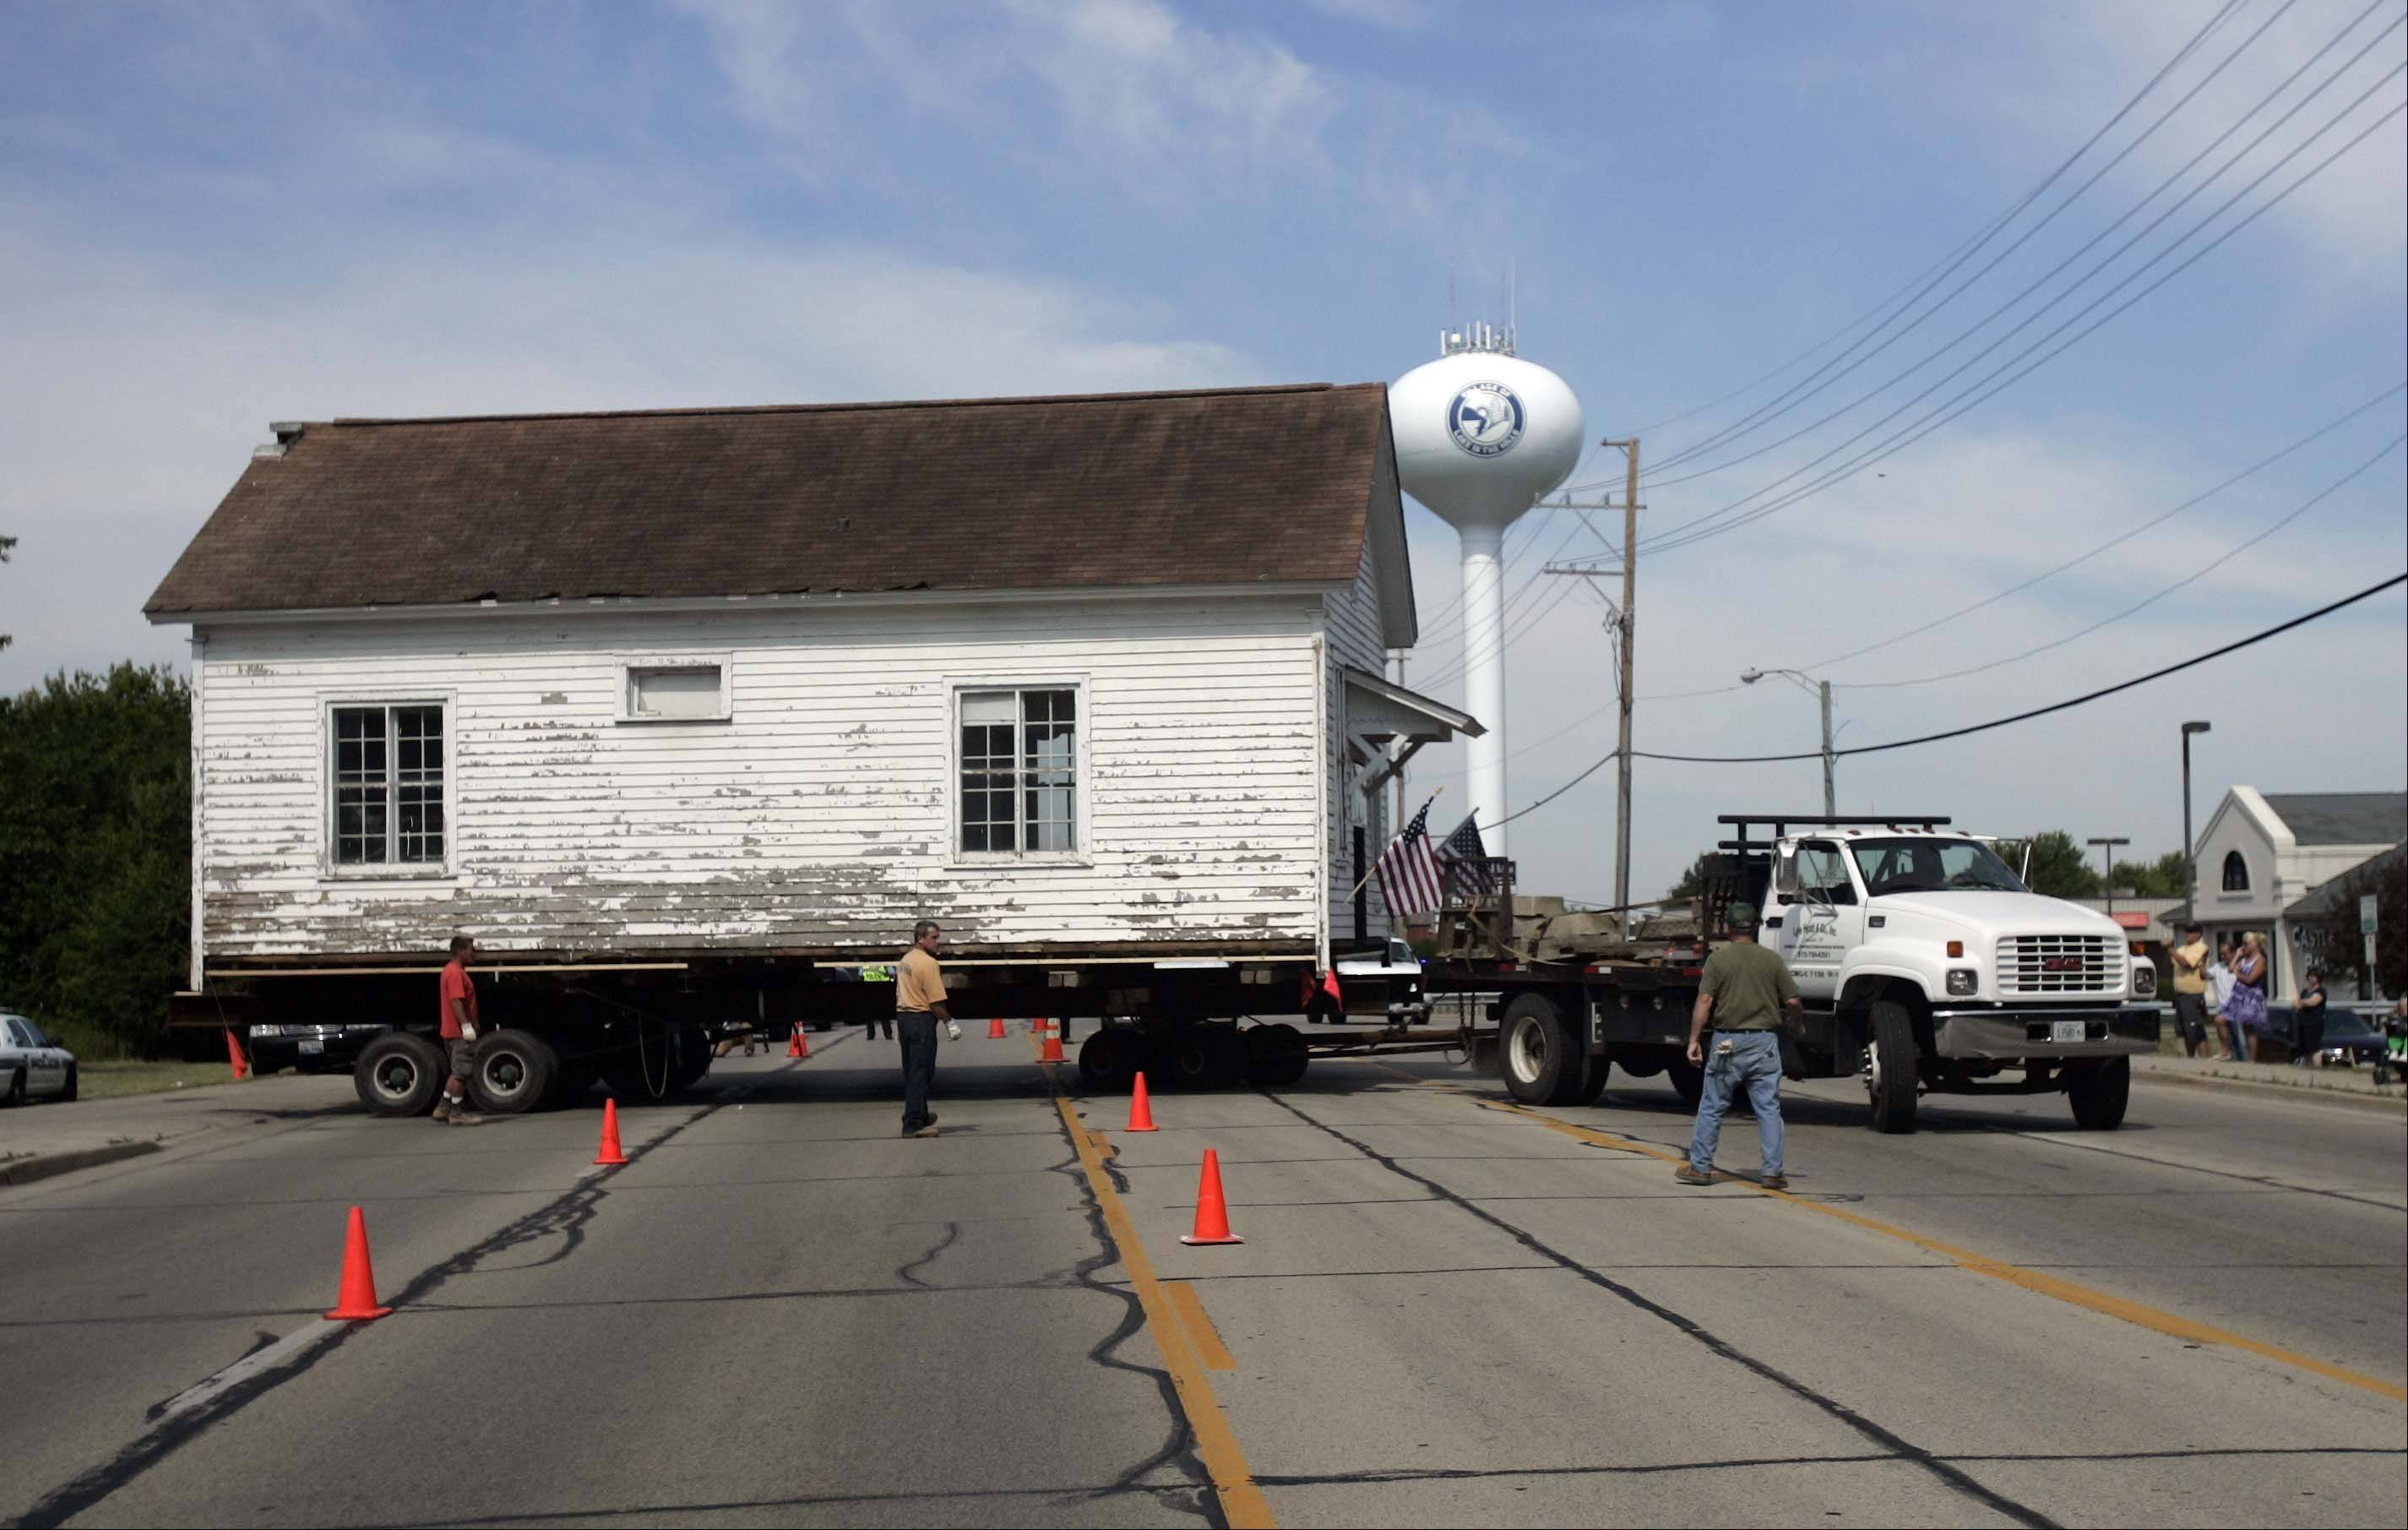 The Ford schoolhouse eases onto Algonquin Road to return to its original location, four blocks down the road.